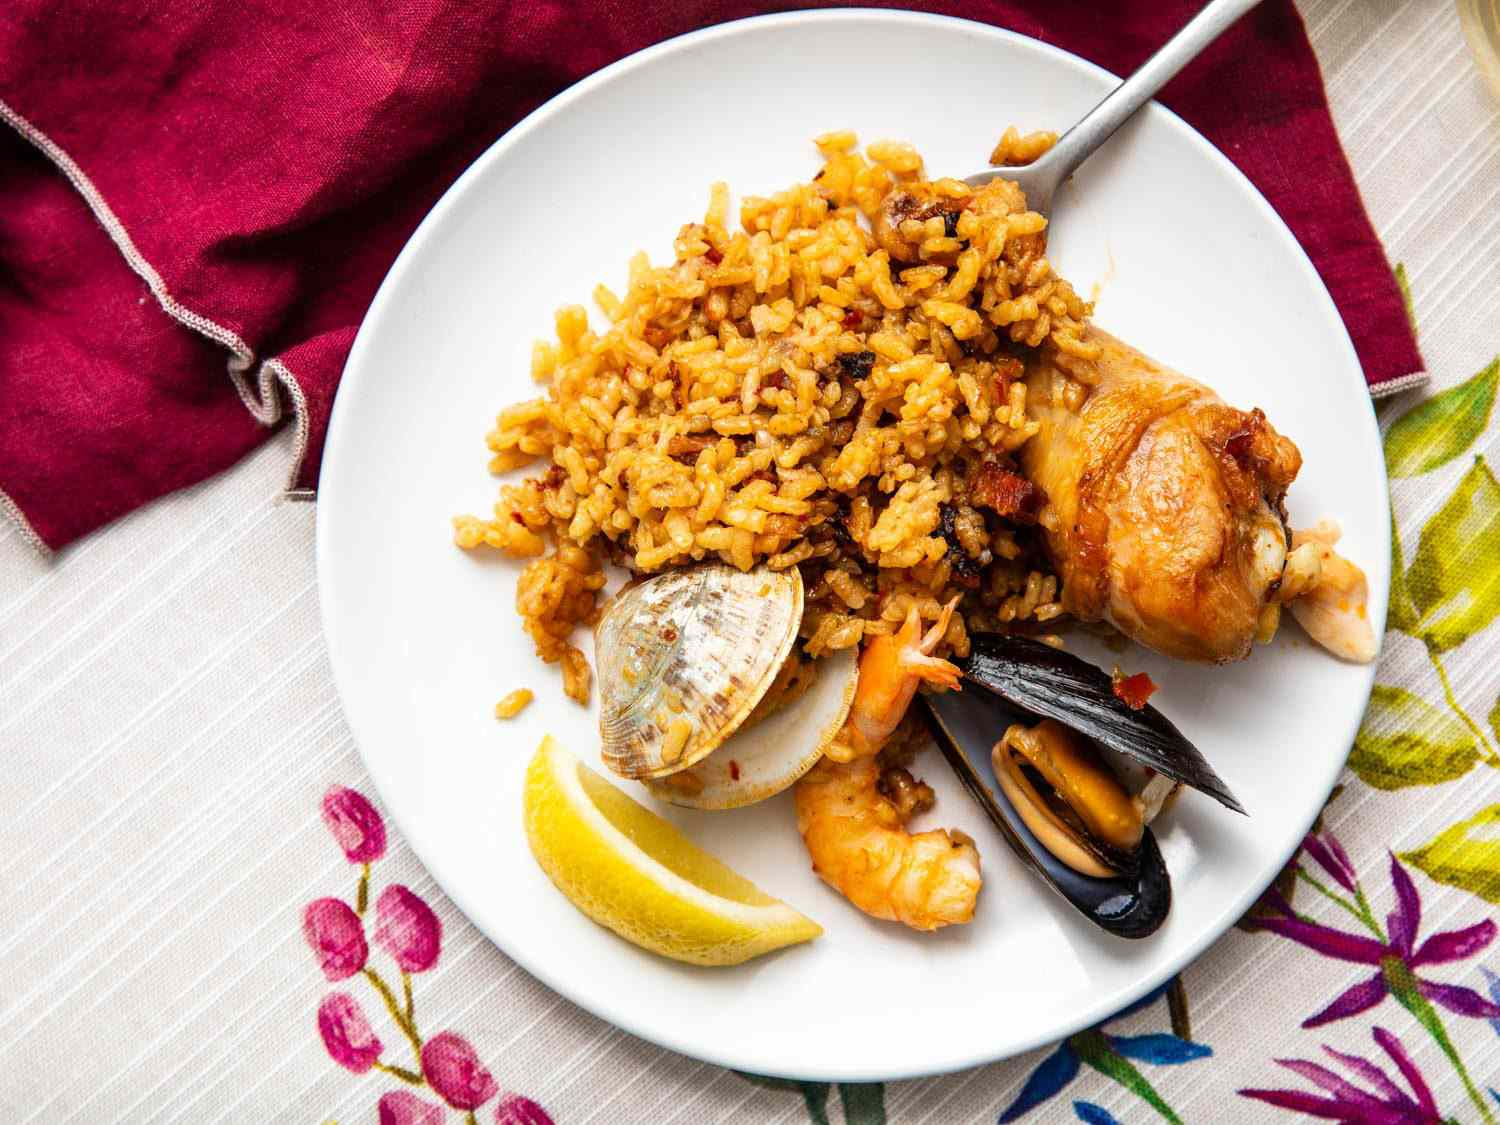 A serving of paella on the plate, showing how the rice grains remain separate when done.